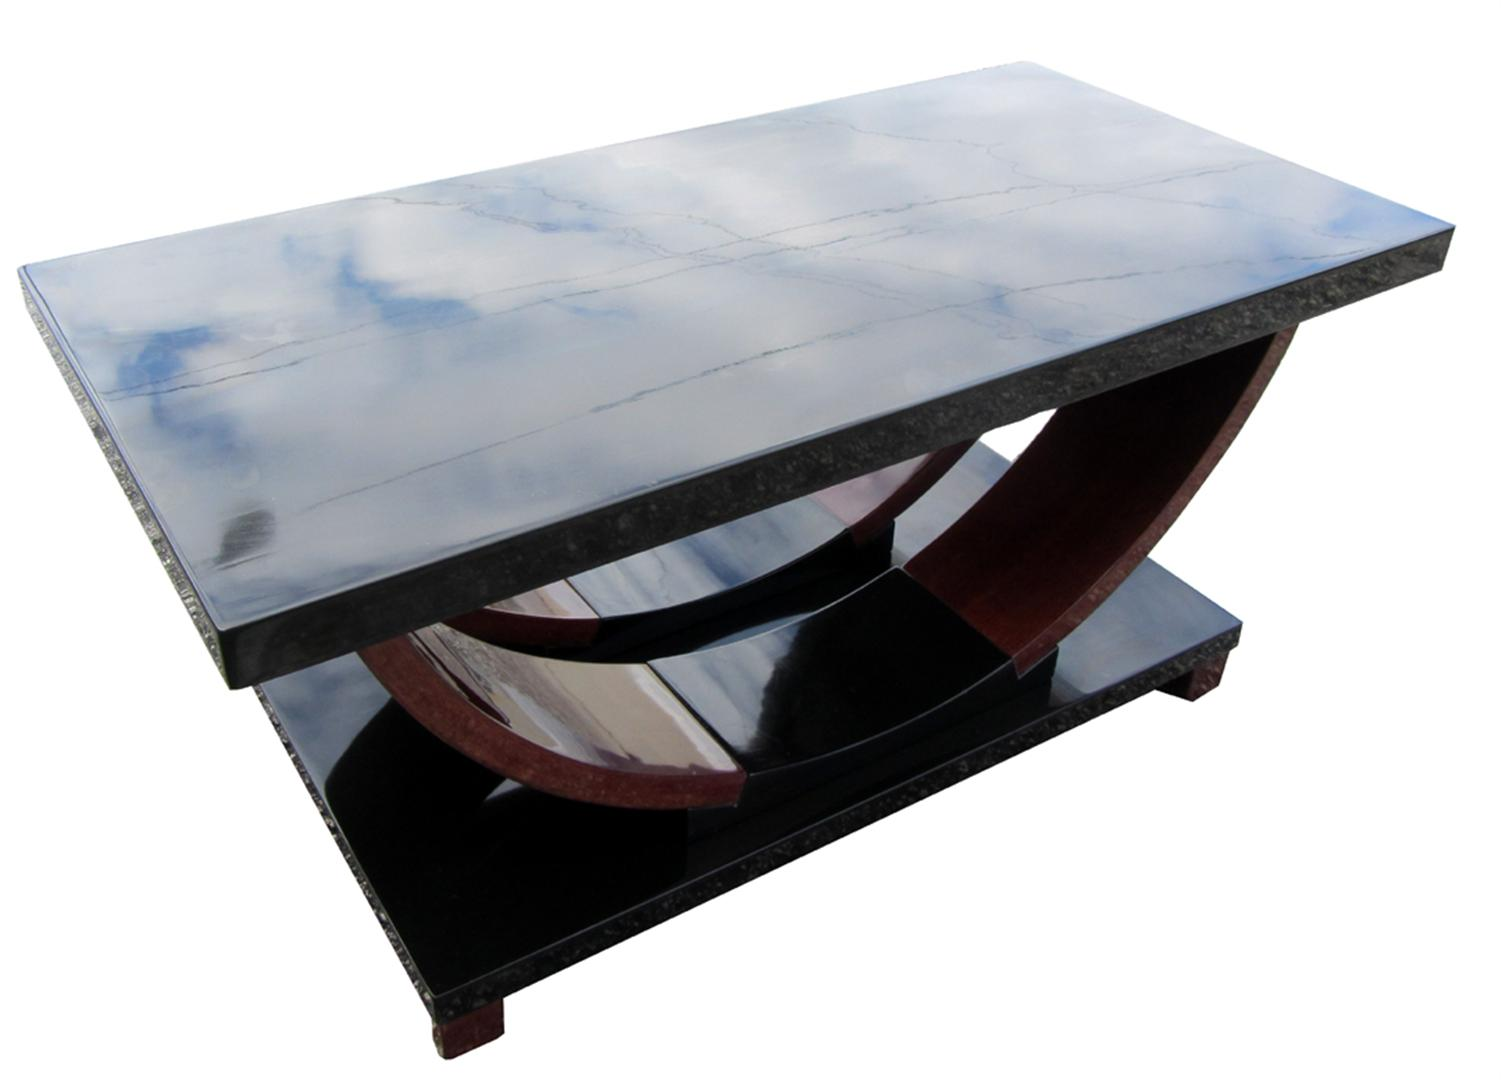 modernage american art deco streamline design coffee table modernism. Black Bedroom Furniture Sets. Home Design Ideas